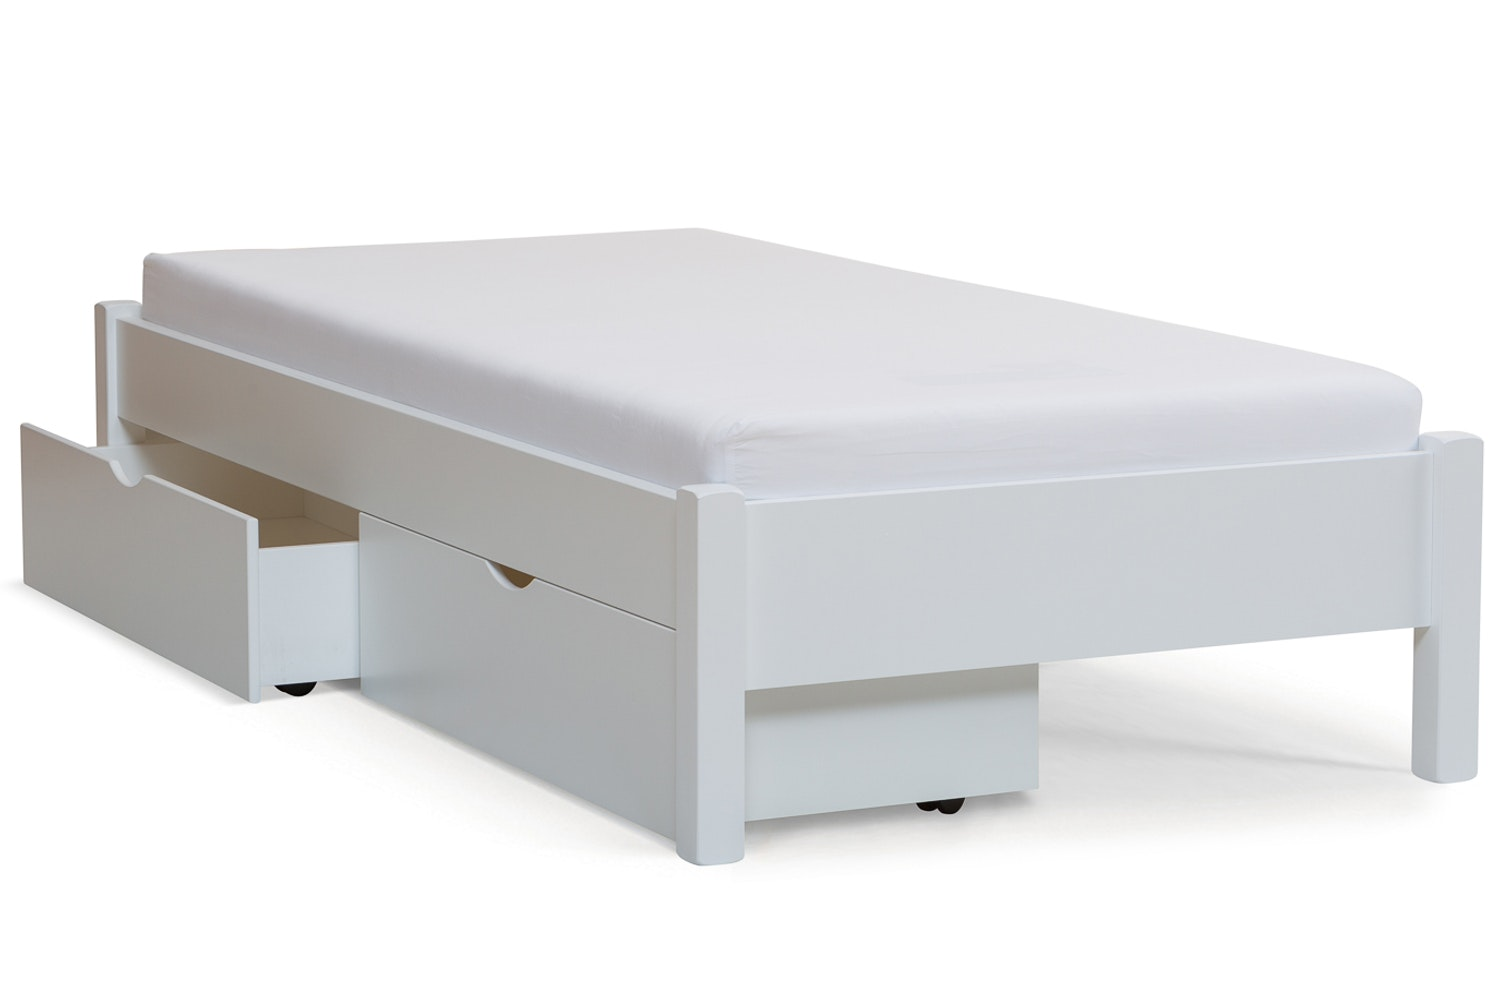 Emily Loft Bed Frame with Underbed Drawers | 3ft | White